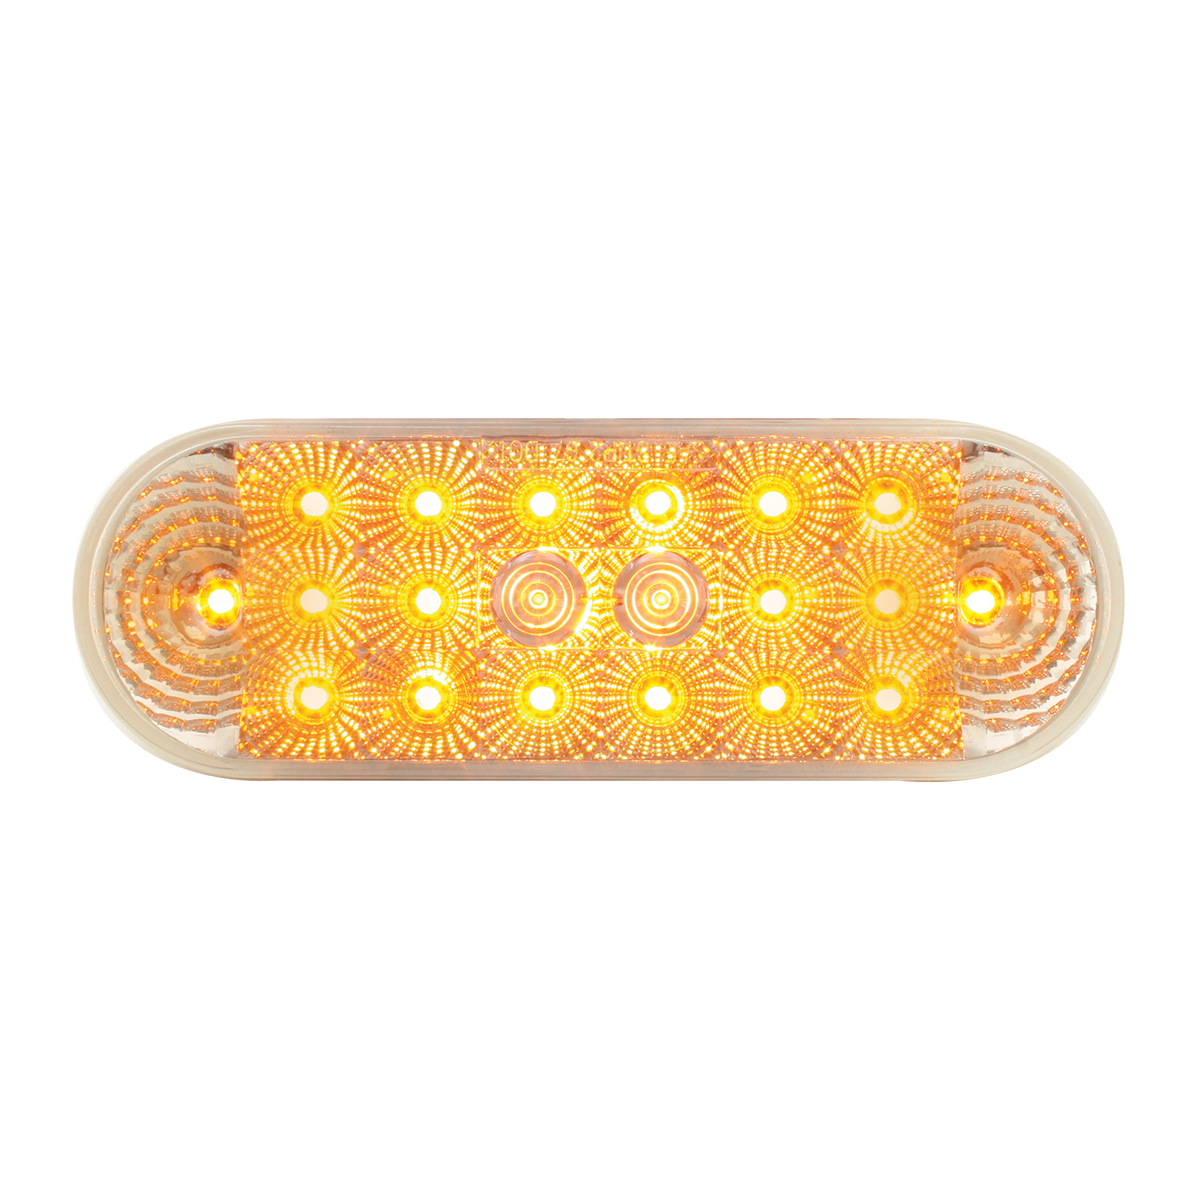 77051 Oval Spyder LED Light in Amber/Clear